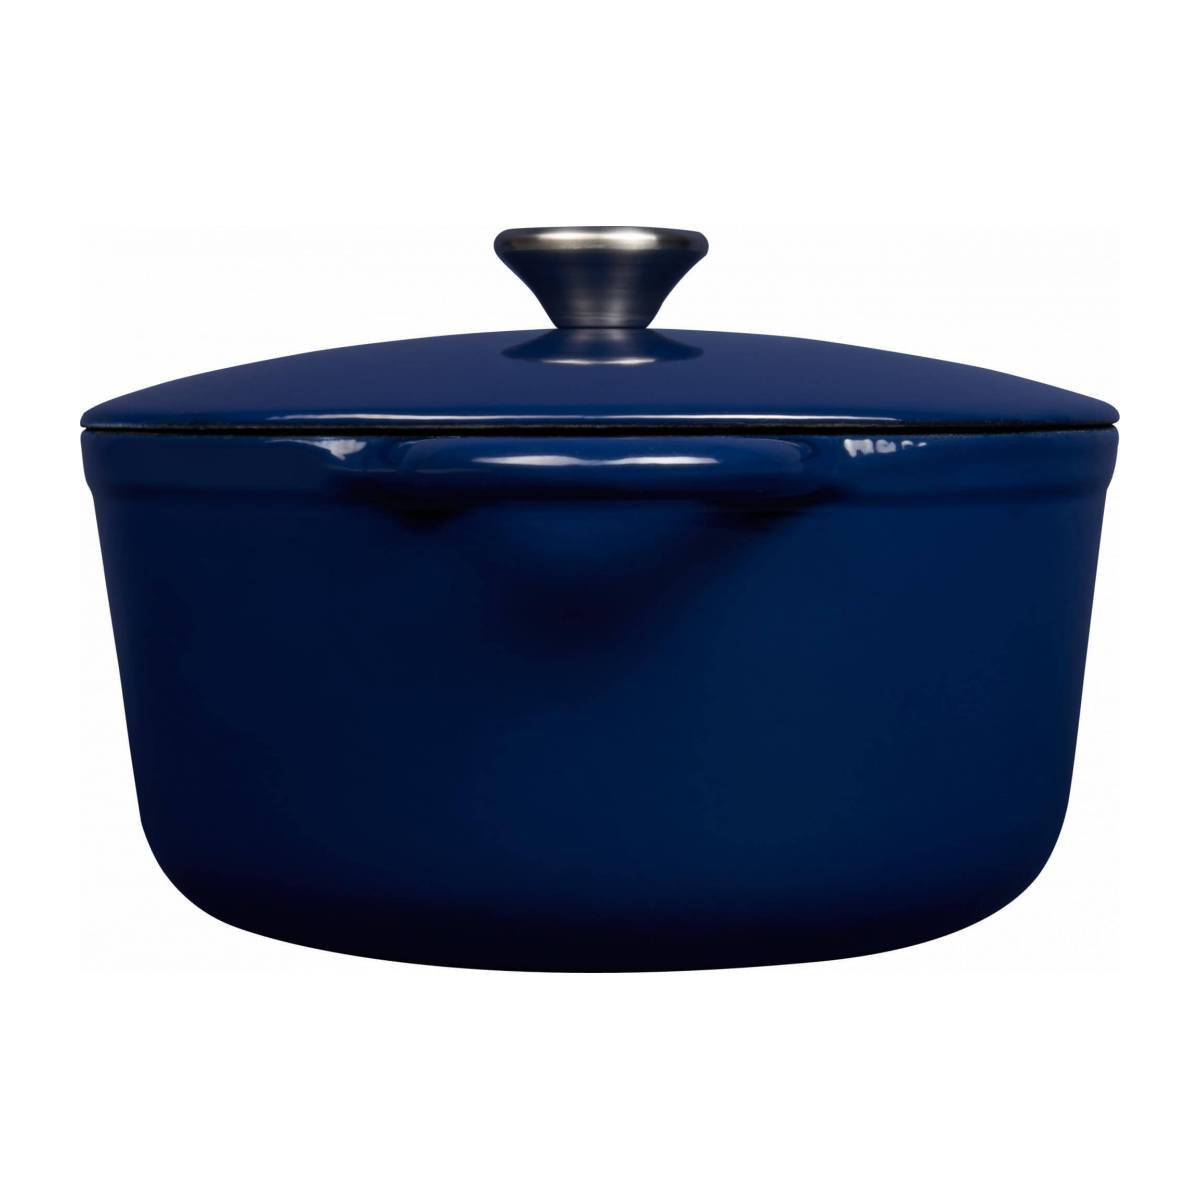 Cast iron cooker 23 cm, blue n°4